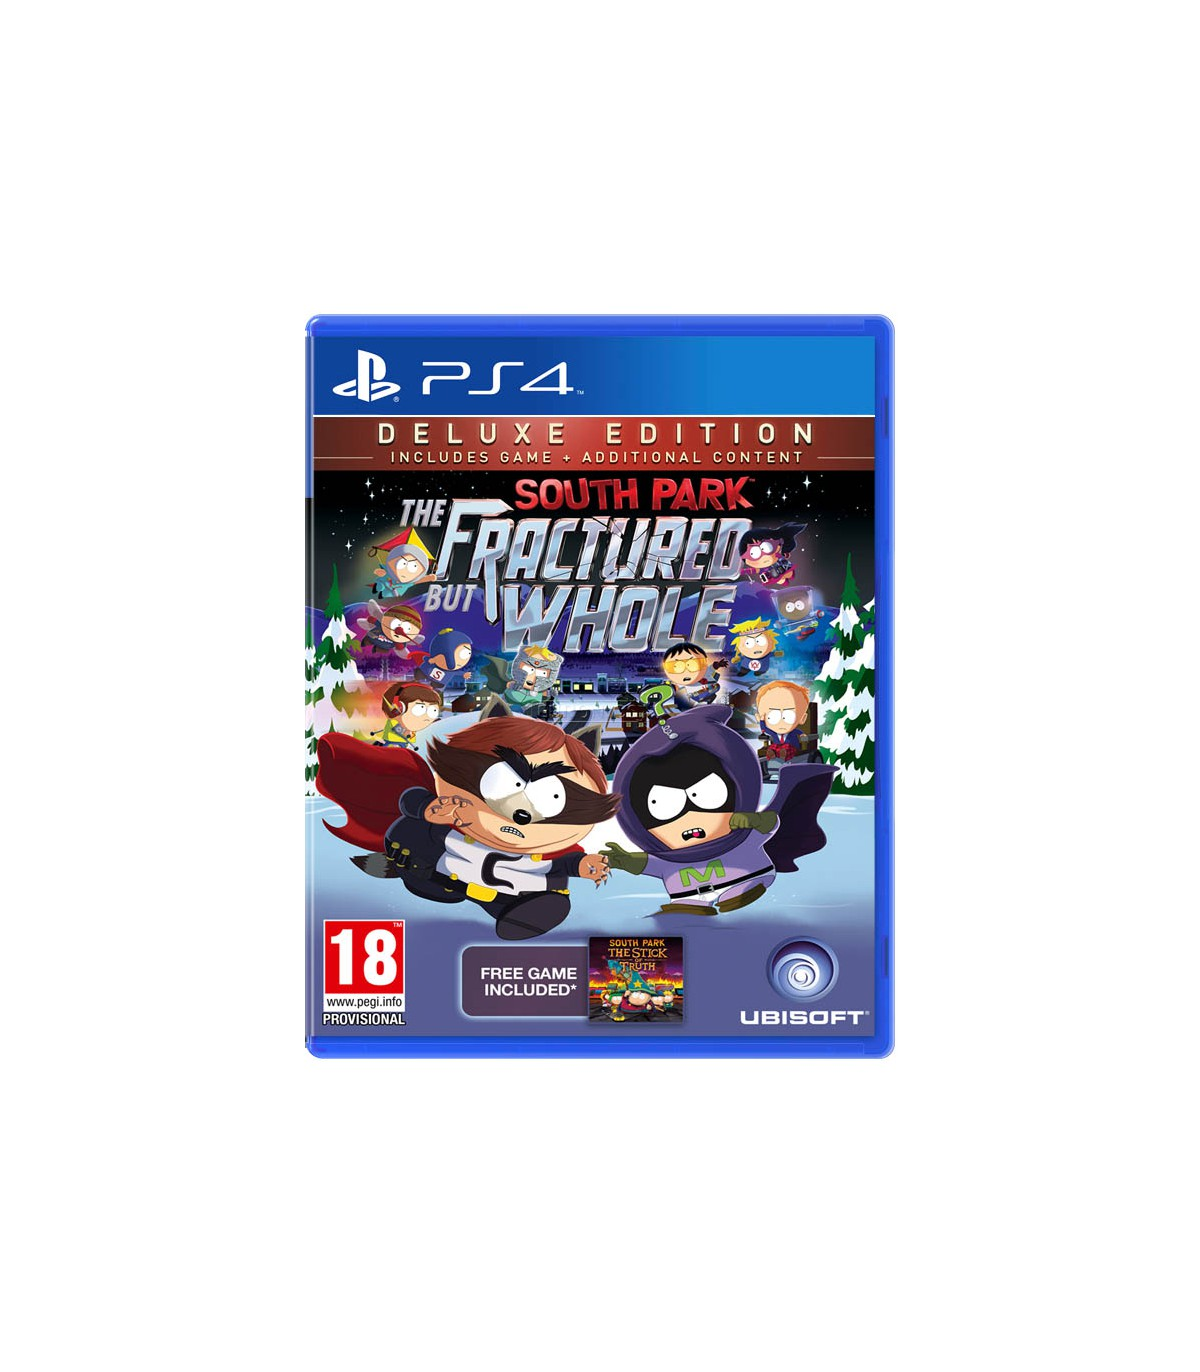 بازی South Park: The Fractured But Whole Deluxe Edition - پلی استیشن 4